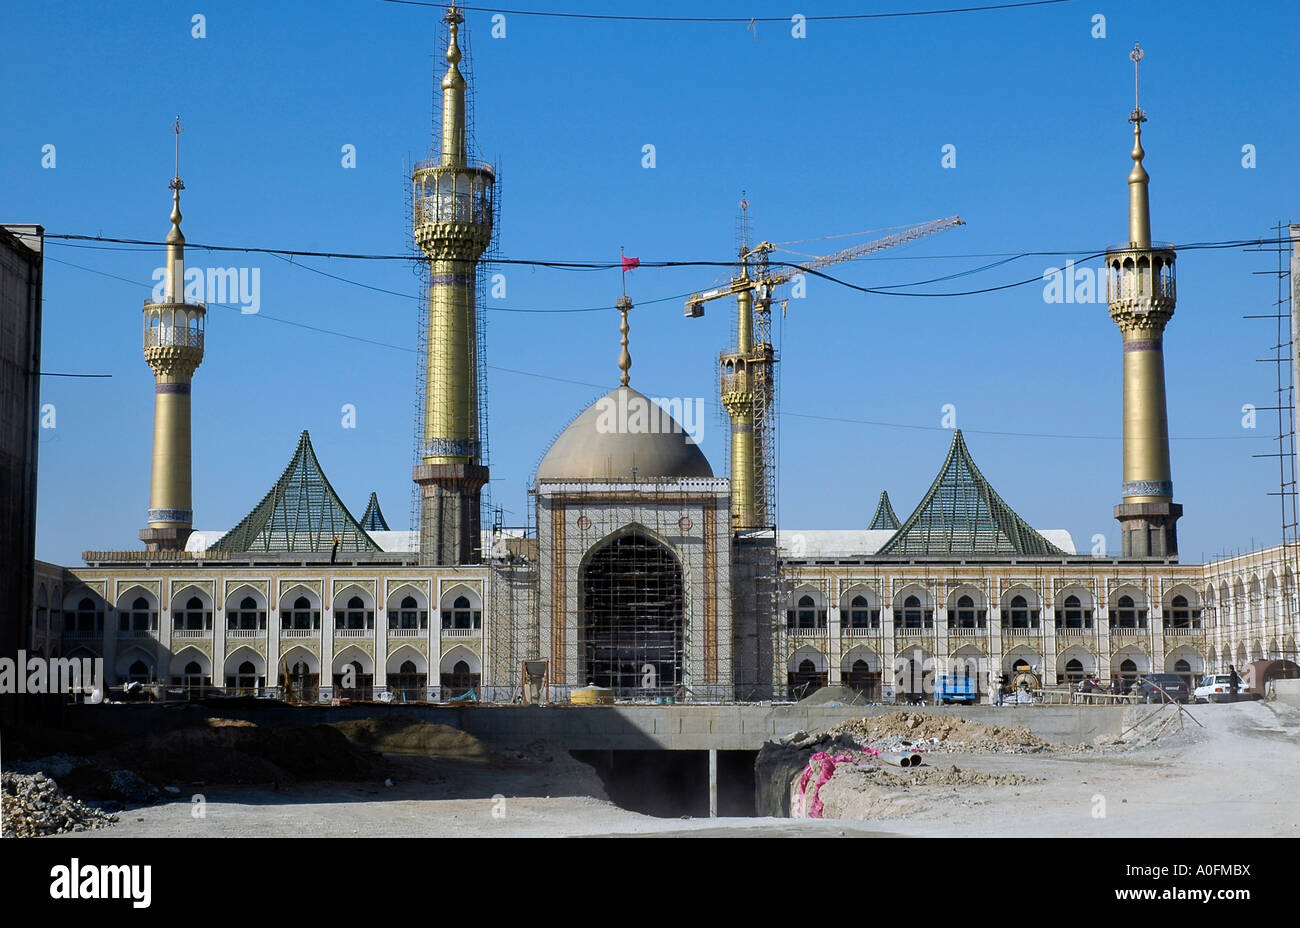 The mausoleum of ayatollah Khomeini is still under construction in southern Tehran, Iran. Stock Photo